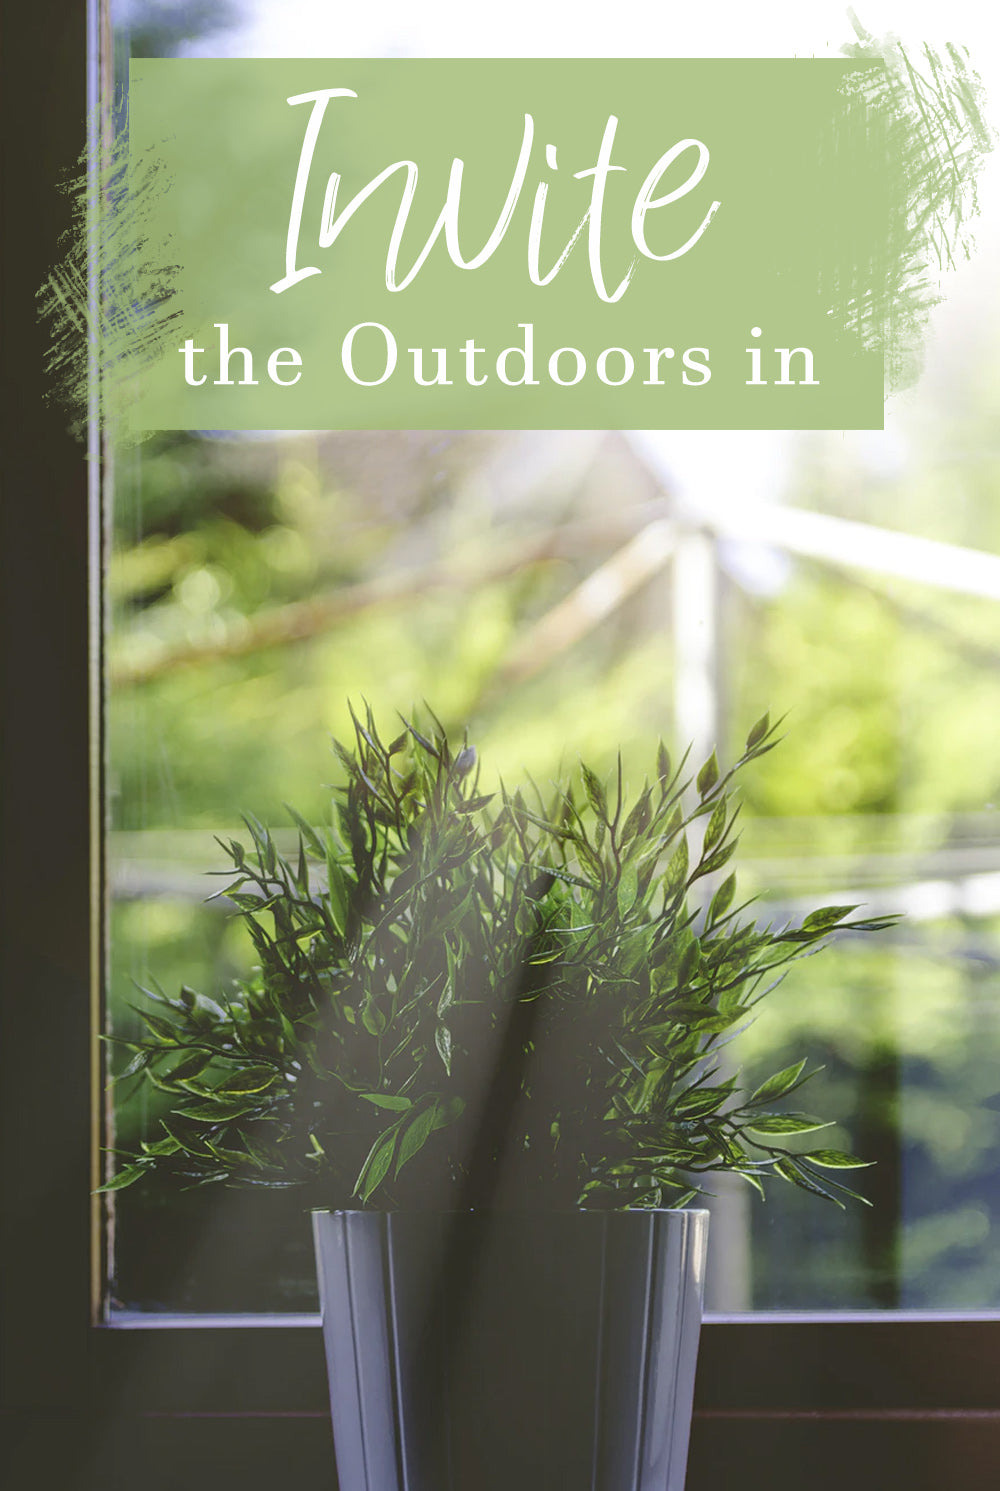 Invite the outdoors in